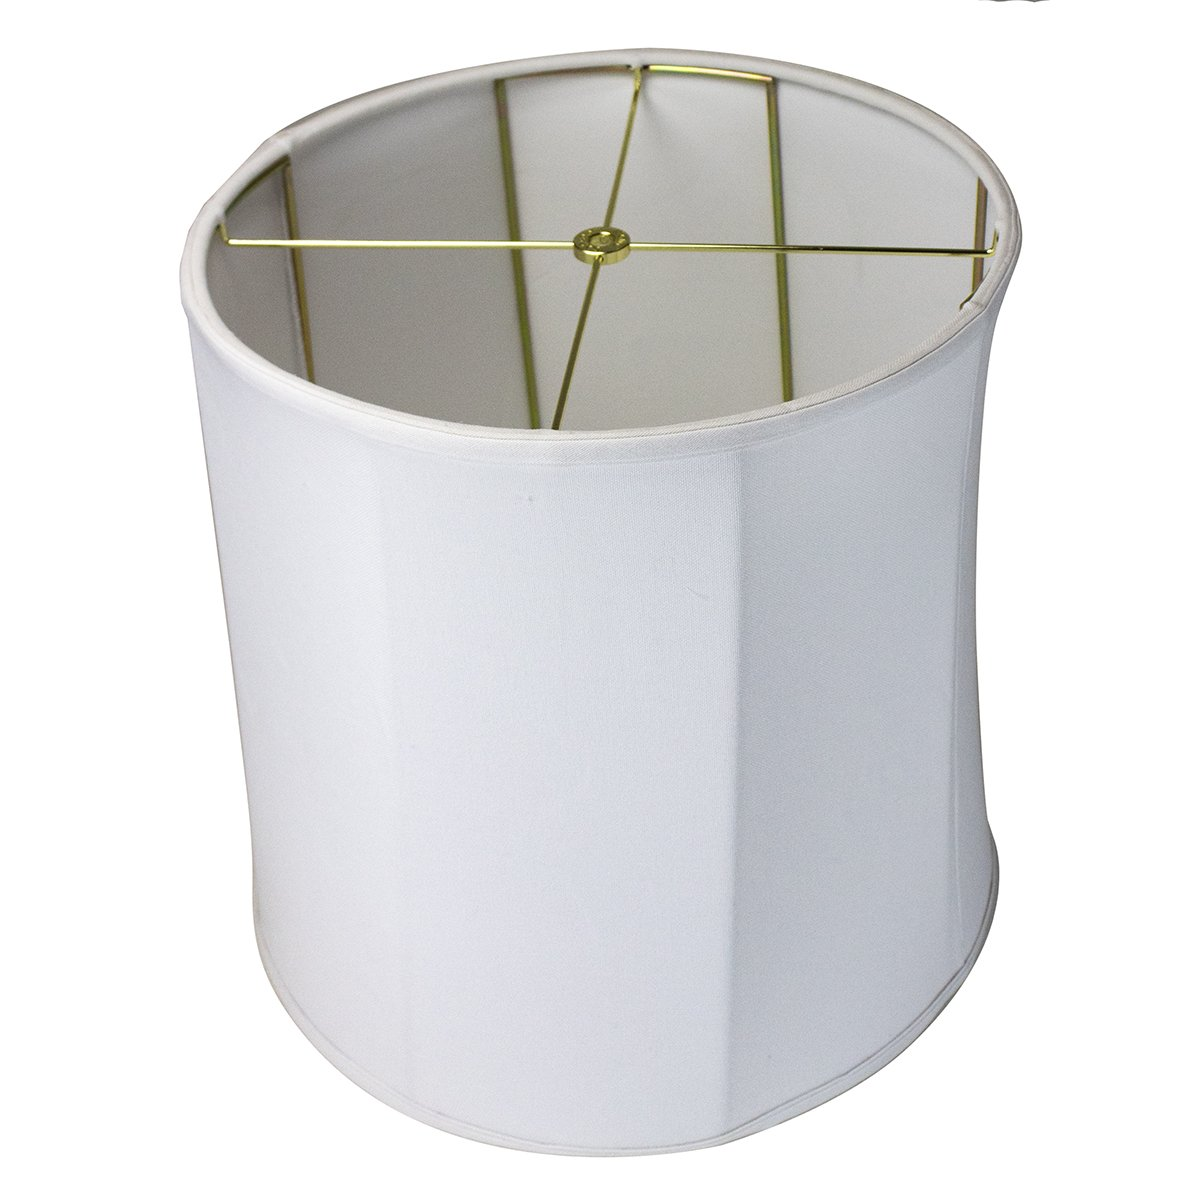 14x15x15 Collapsible Drum Lampshade Premium White Linen with Brass Spider fitter By Home Concept - Perfect for table and Desk lamps - Medium, White